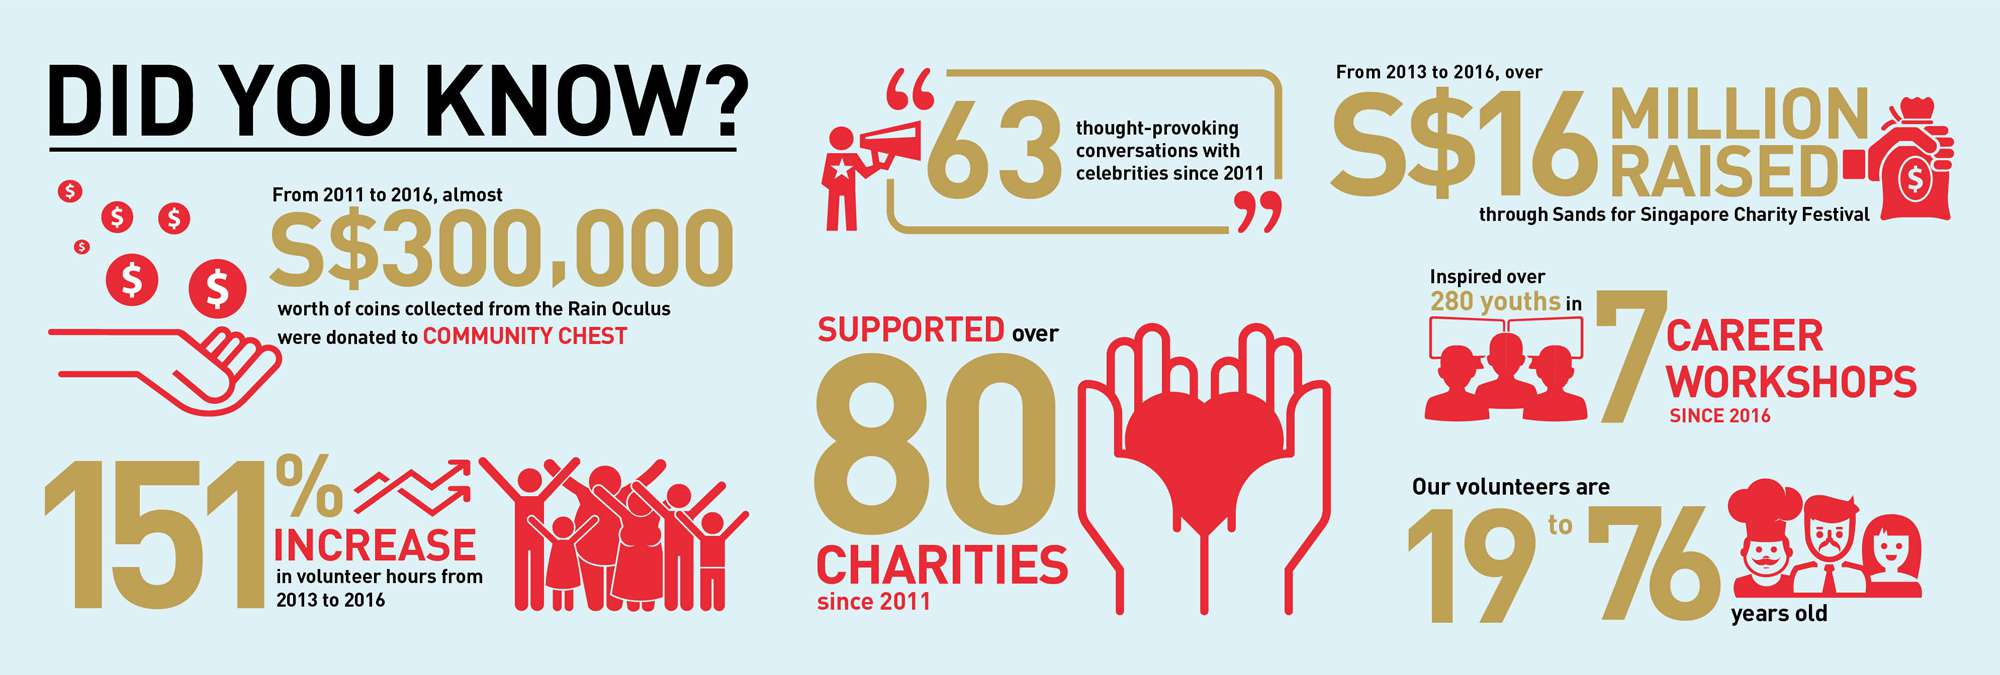 Marina Bay Sands Corporate Social Responsibility Infographic